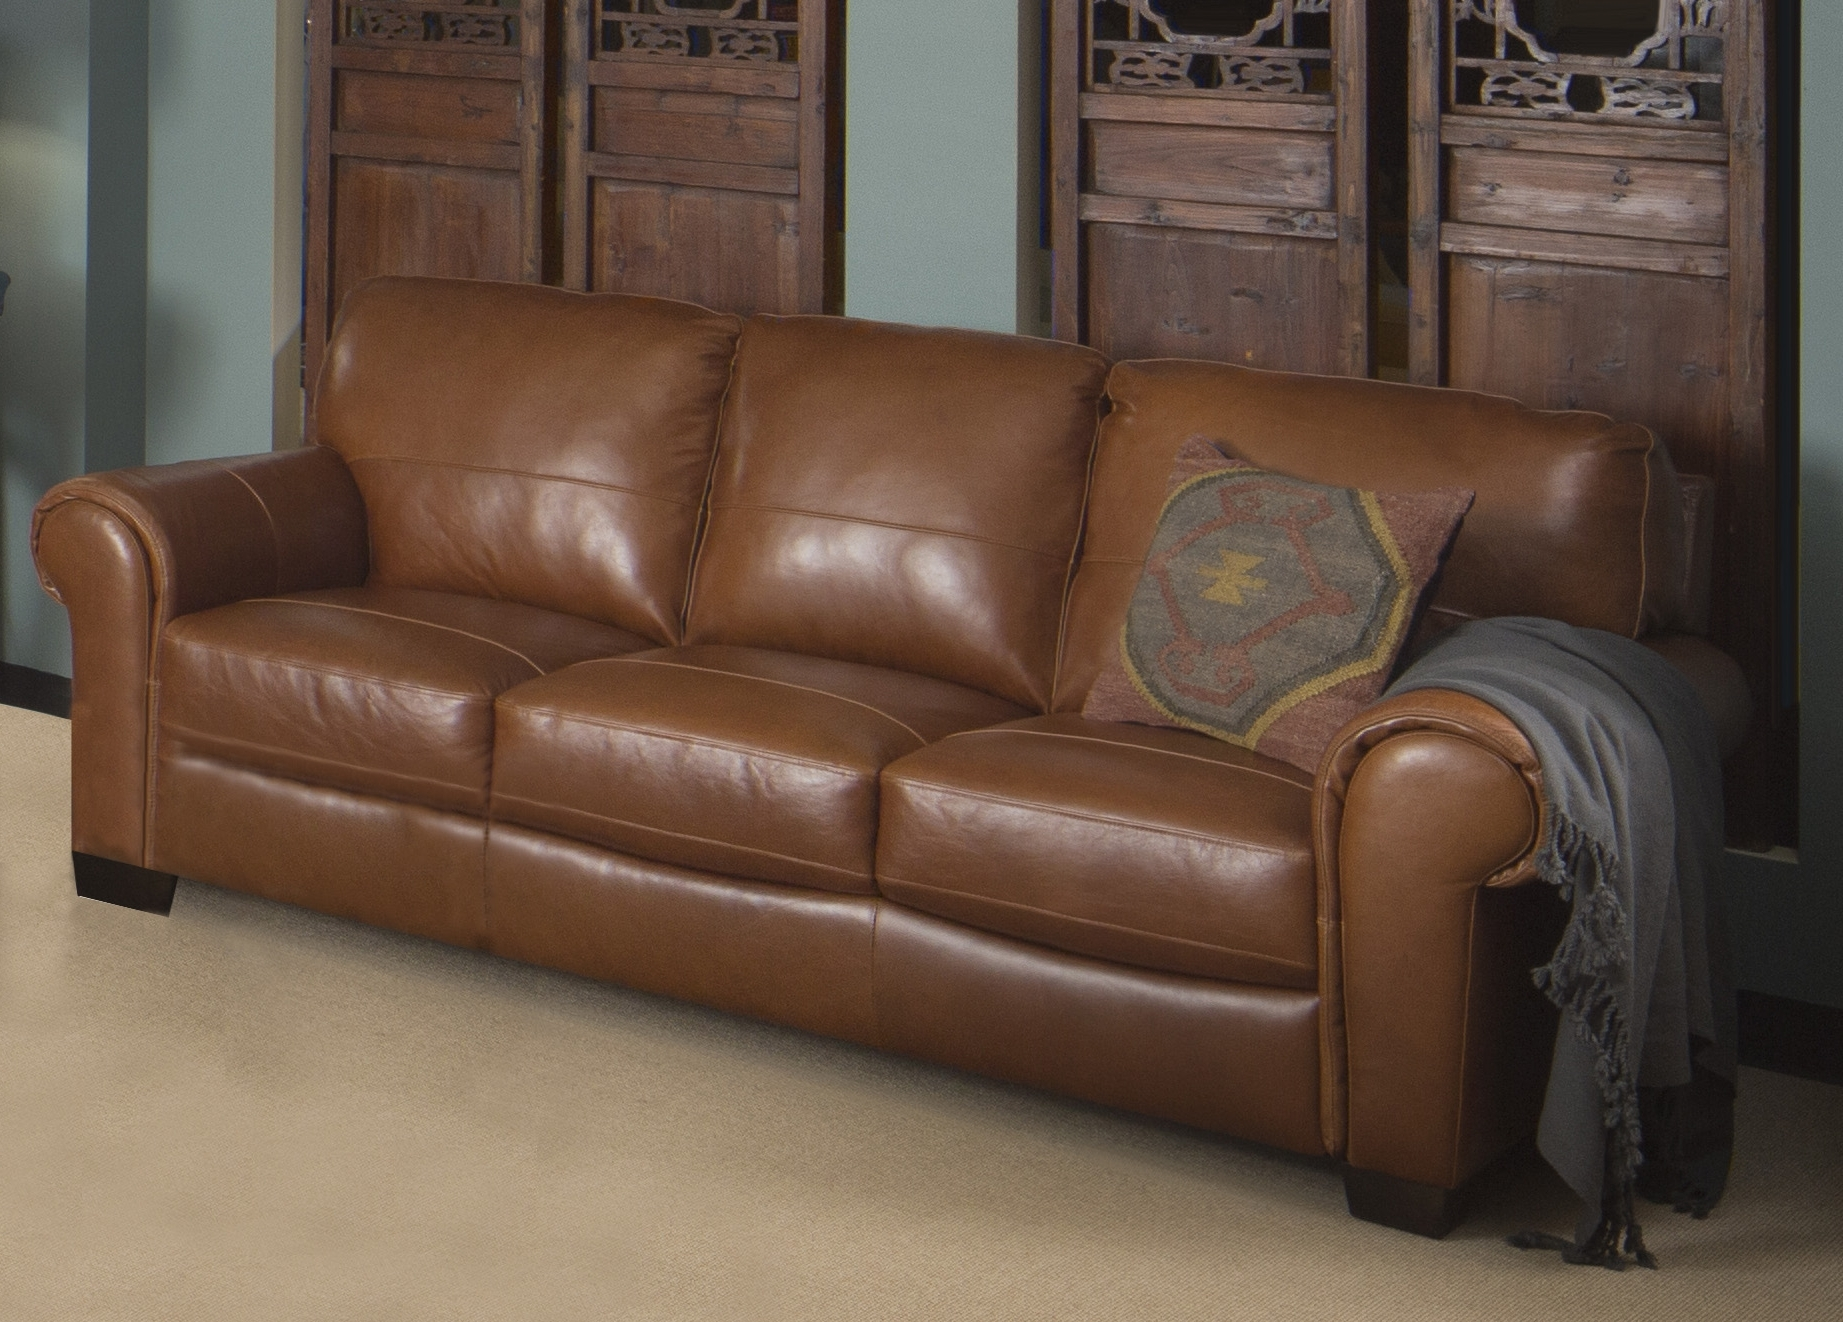 My Dream House With Leather Lounge Sofas (View 12 of 20)